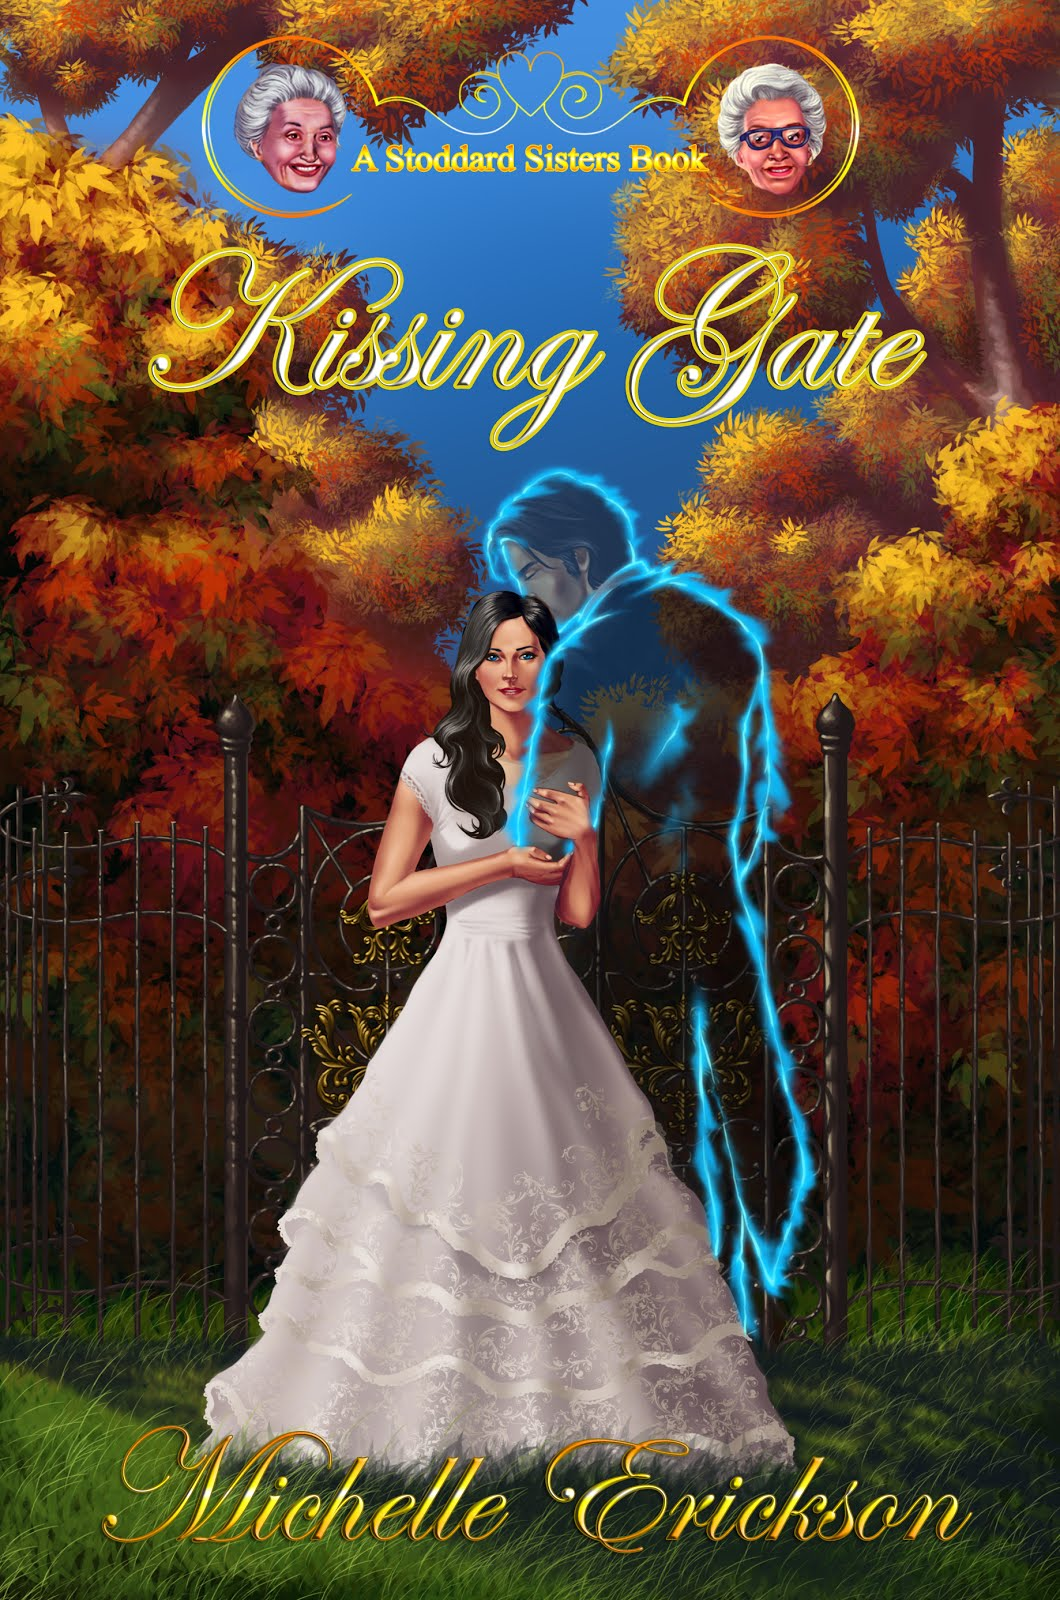 Kissing Gate:  A Stoddard Sisters Book